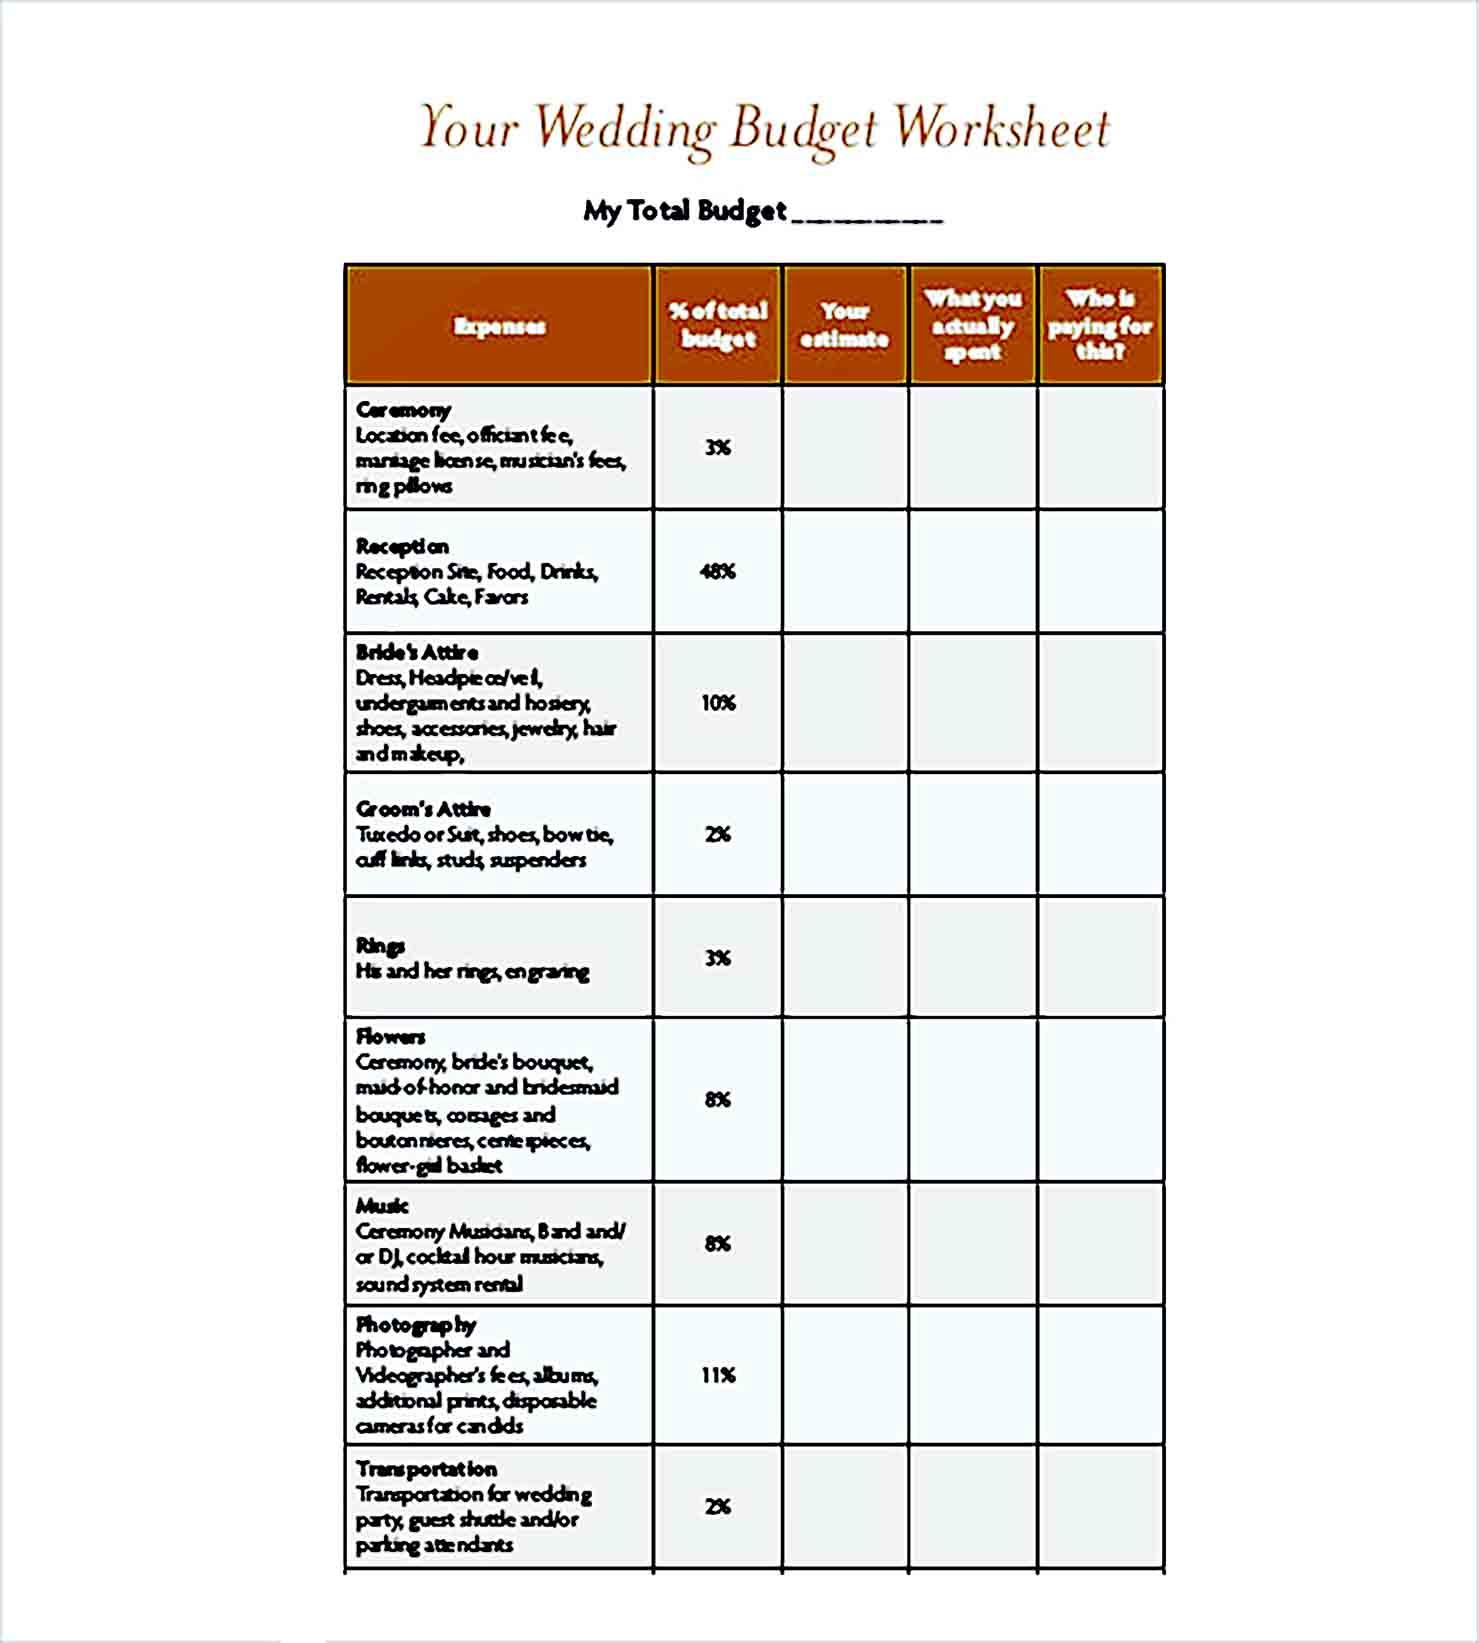 Sample wedding budget with percentages